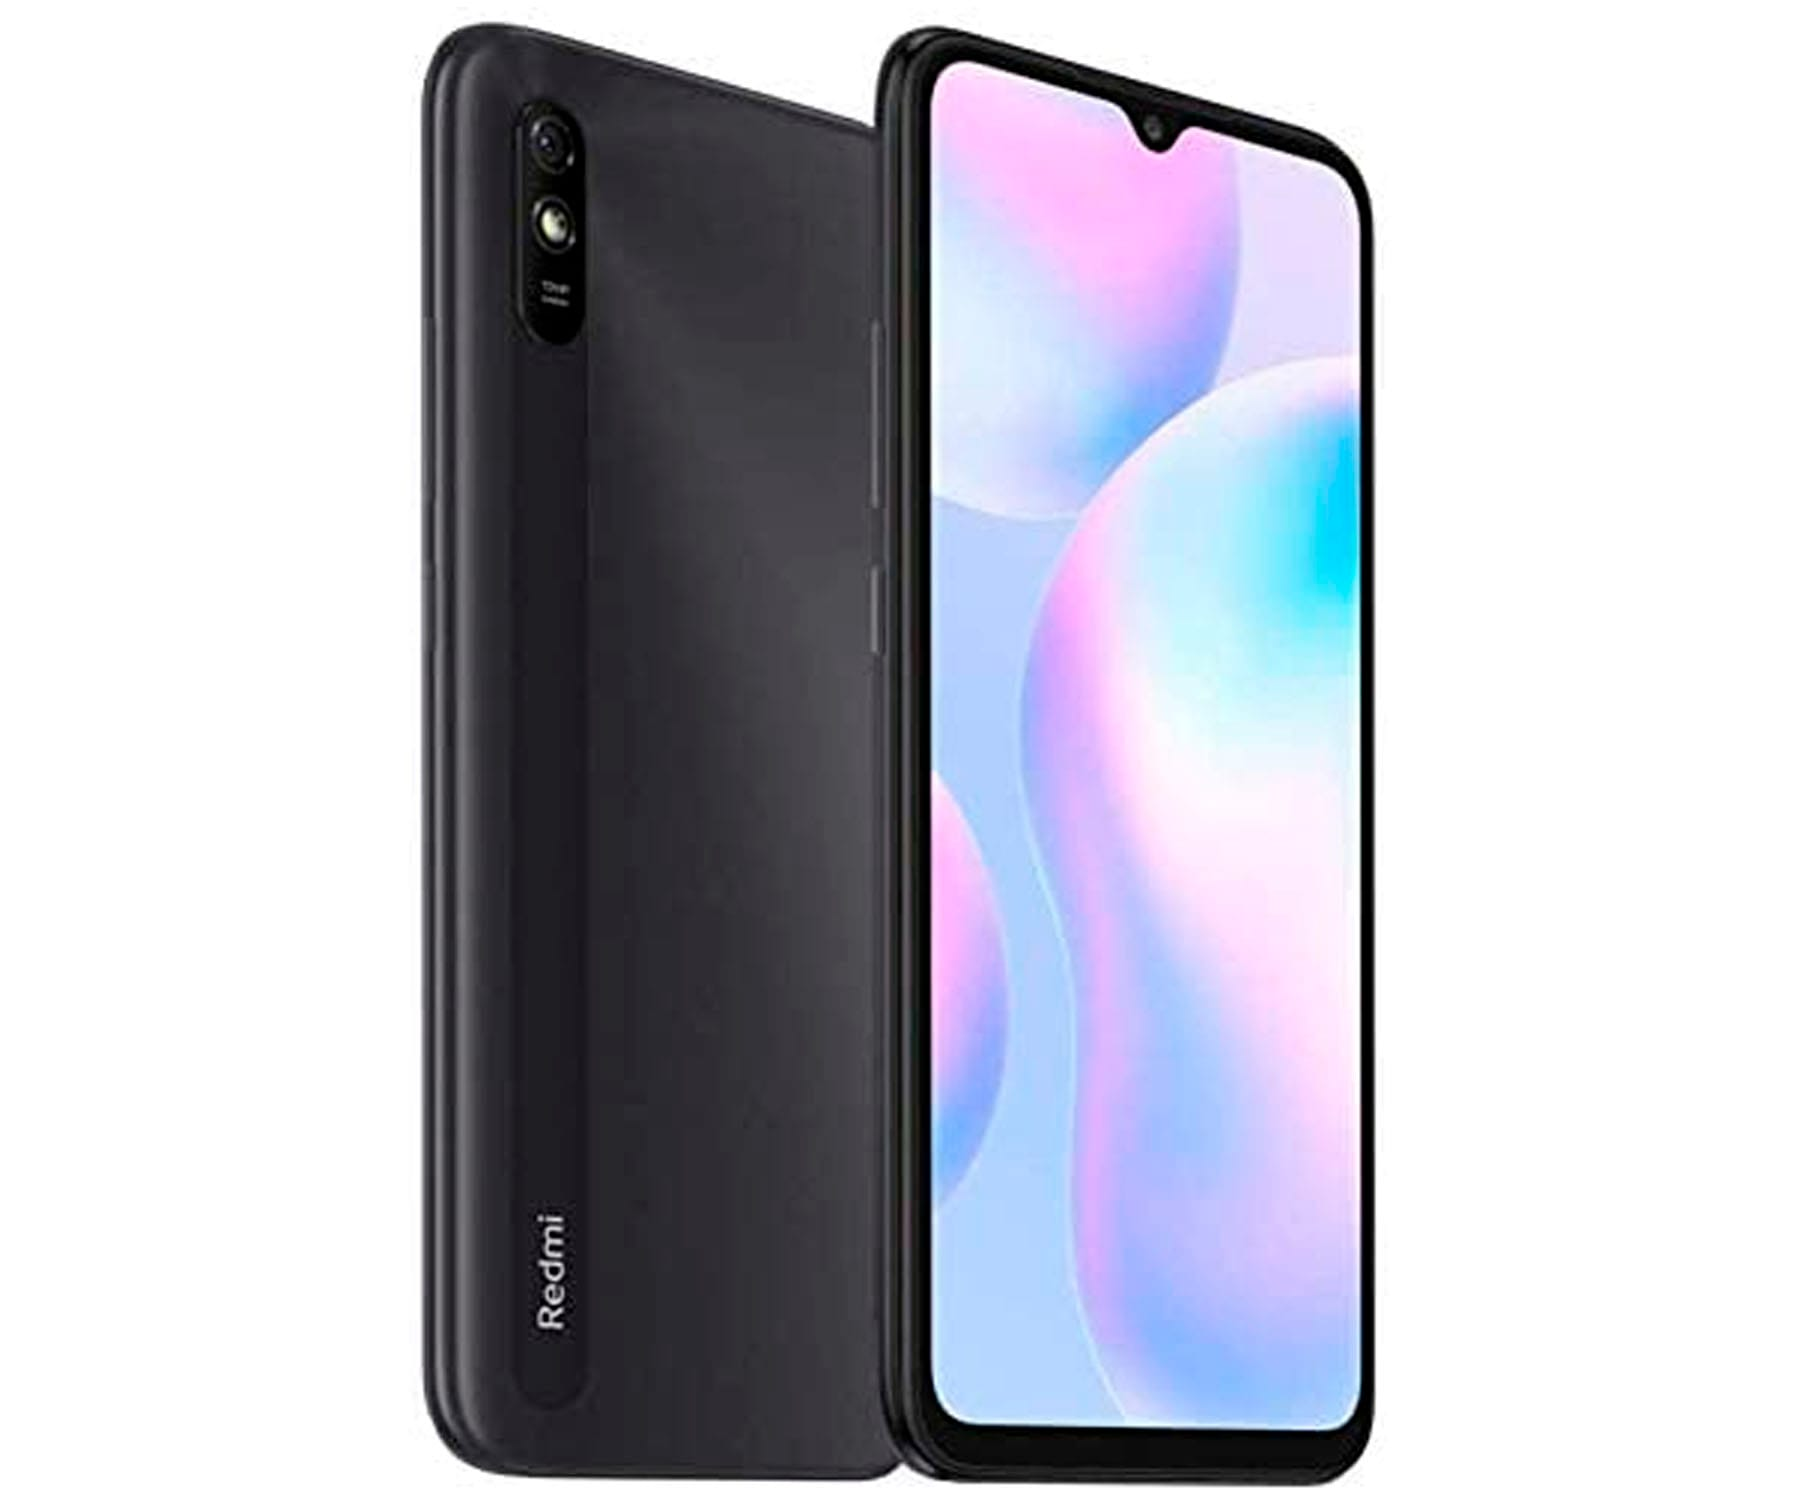 XIAOMI REDMI 9A GRIS MÓVIL 4G DUAL SIM 6.53'' HD+ OCTACORE 32GB 2GB RAM CAM 13MP SELFIES 5MP